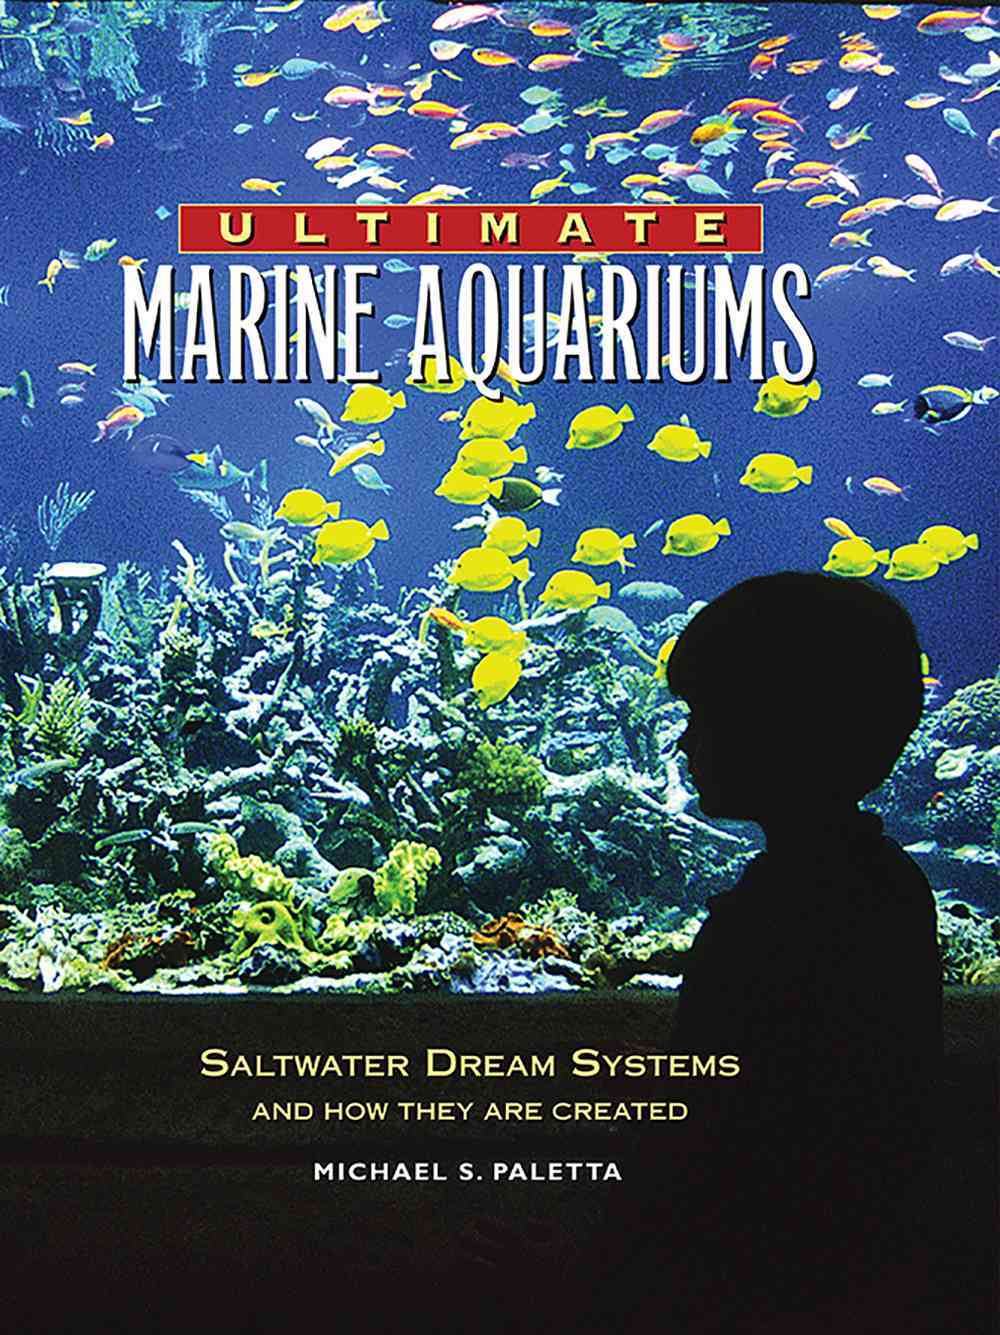 Ultimate Marine Aquariums: Saltwater Dream Systems and How They Are Created (Hardcover)